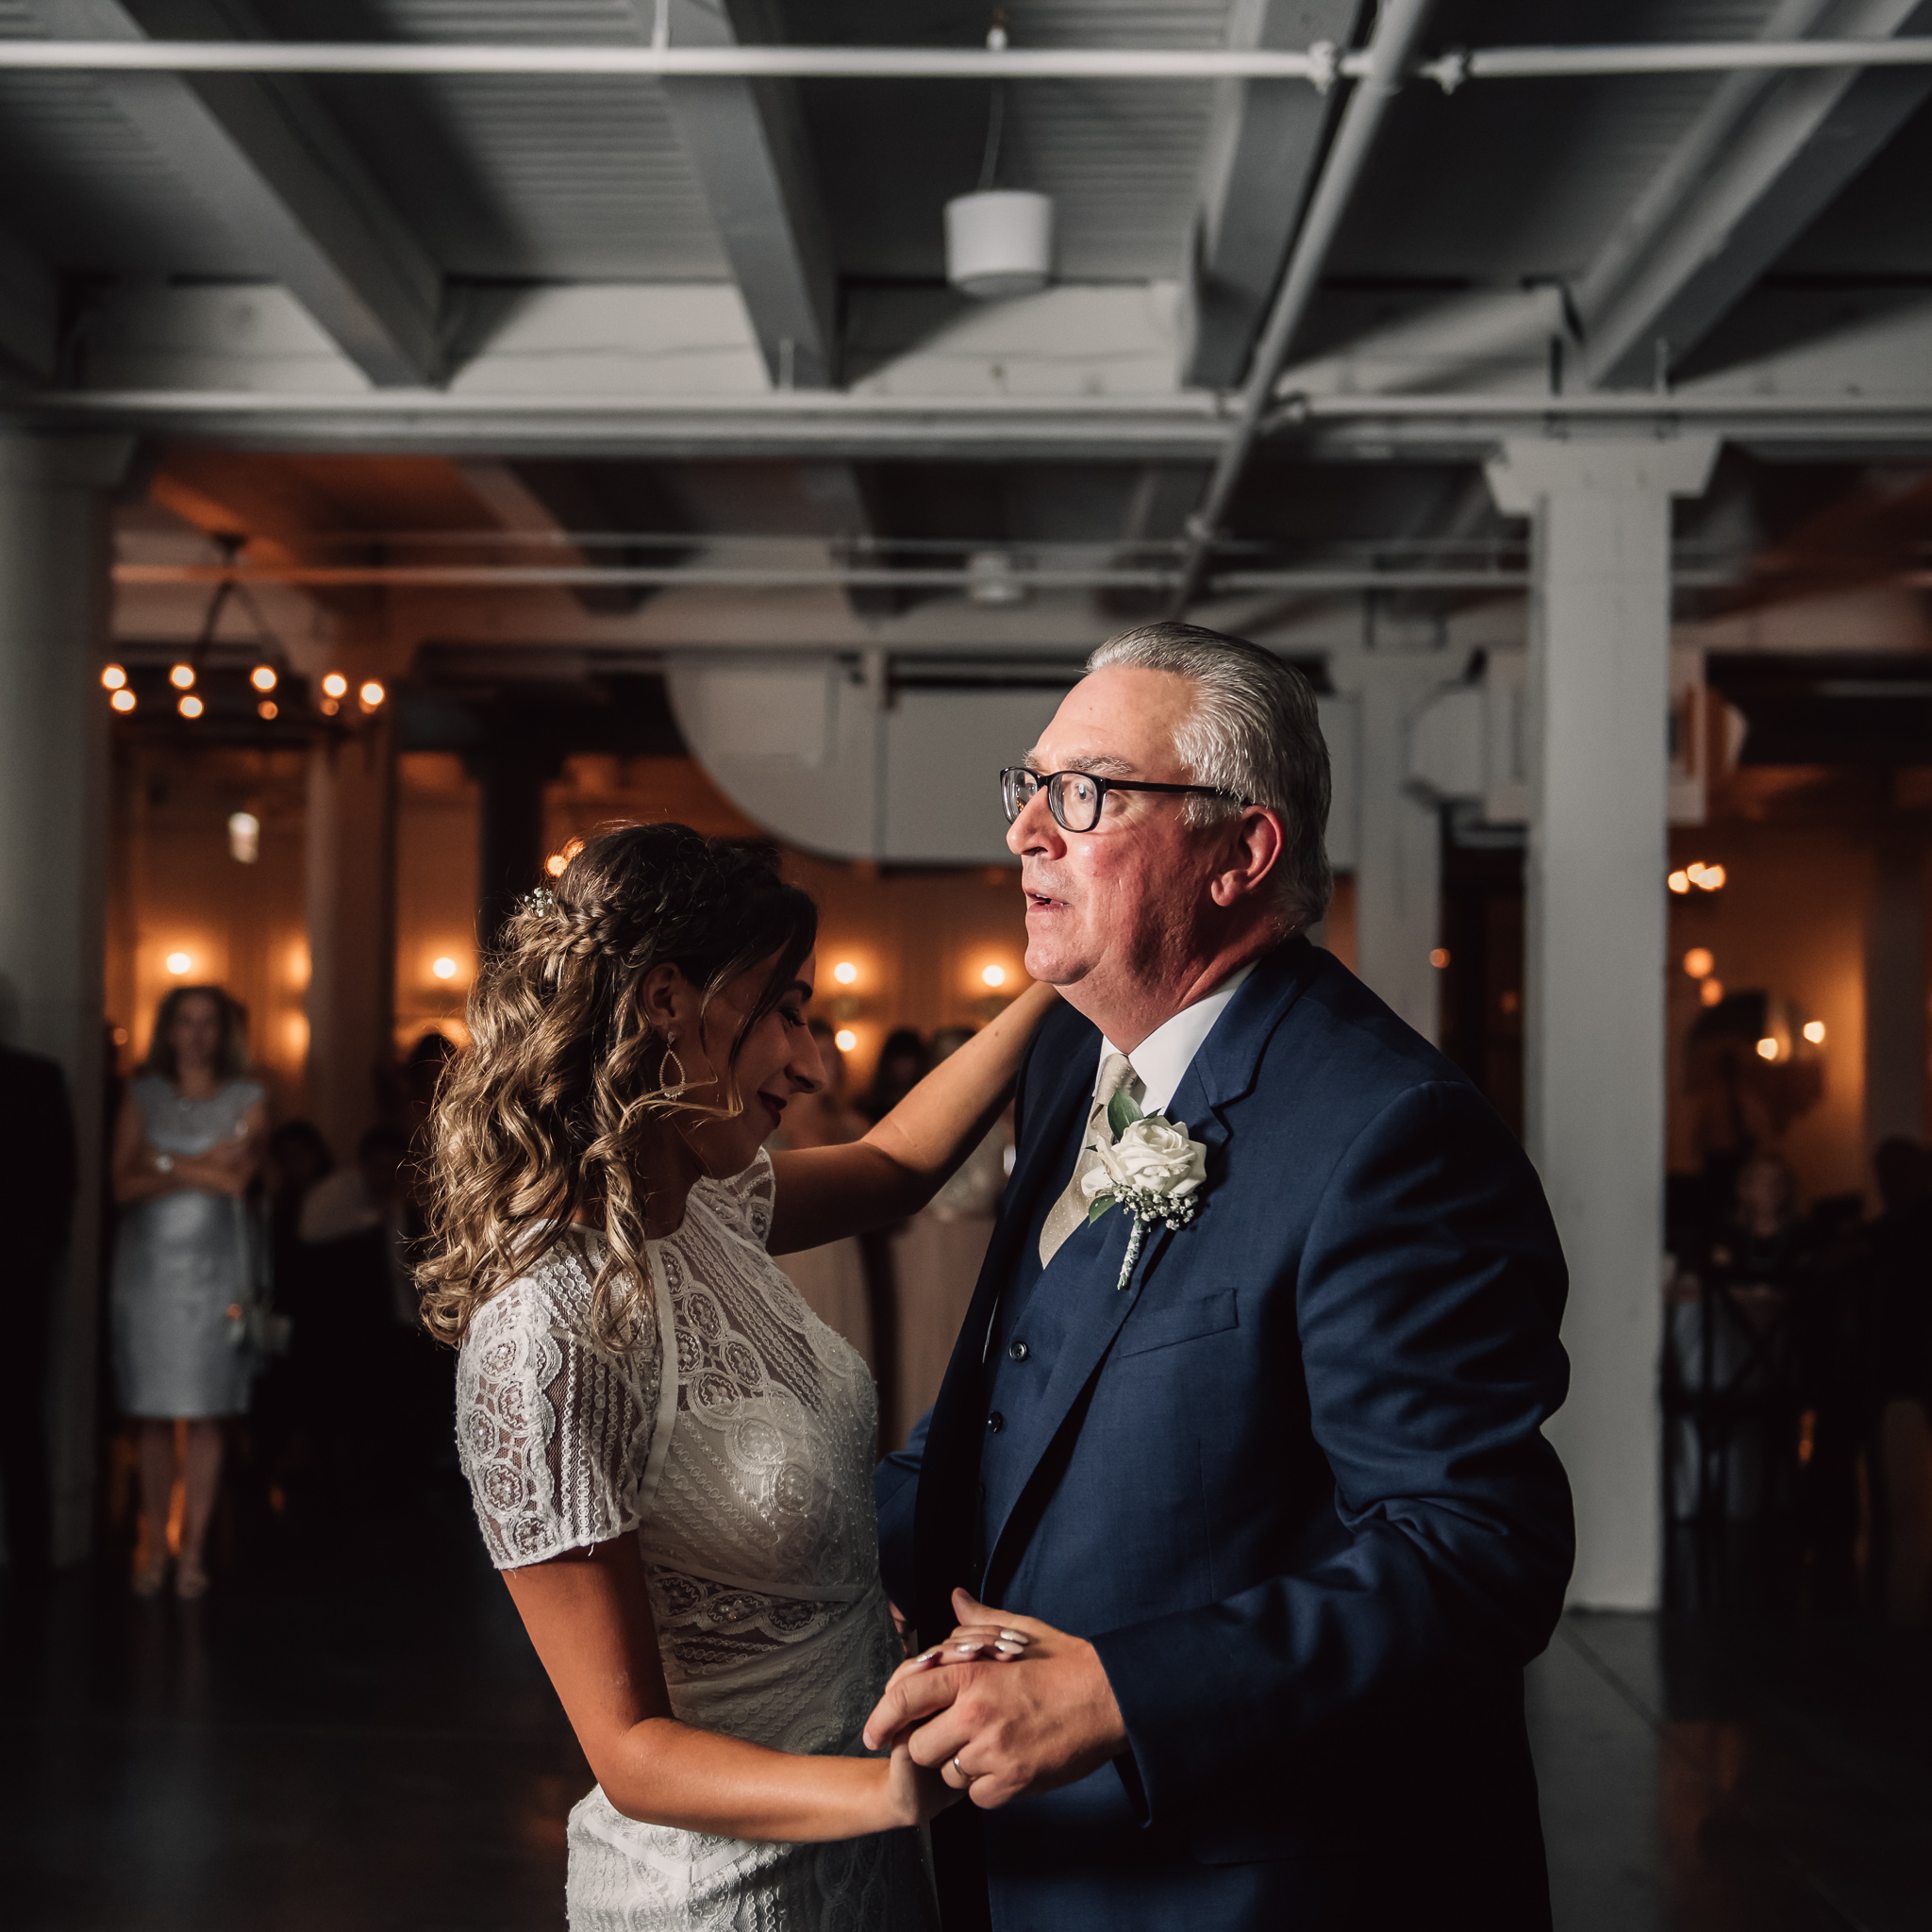 20180915wedding-kyler-michaela-889.jpg